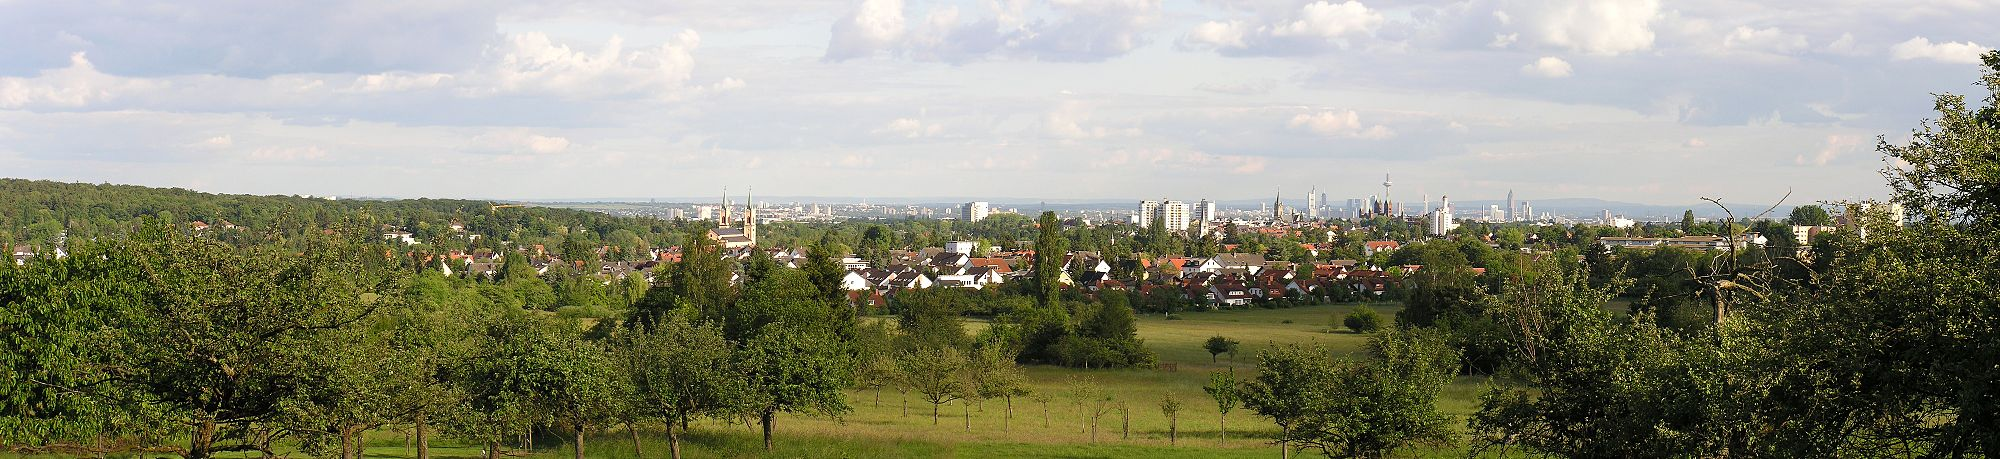 Bad Homburg-Panorama.jpg